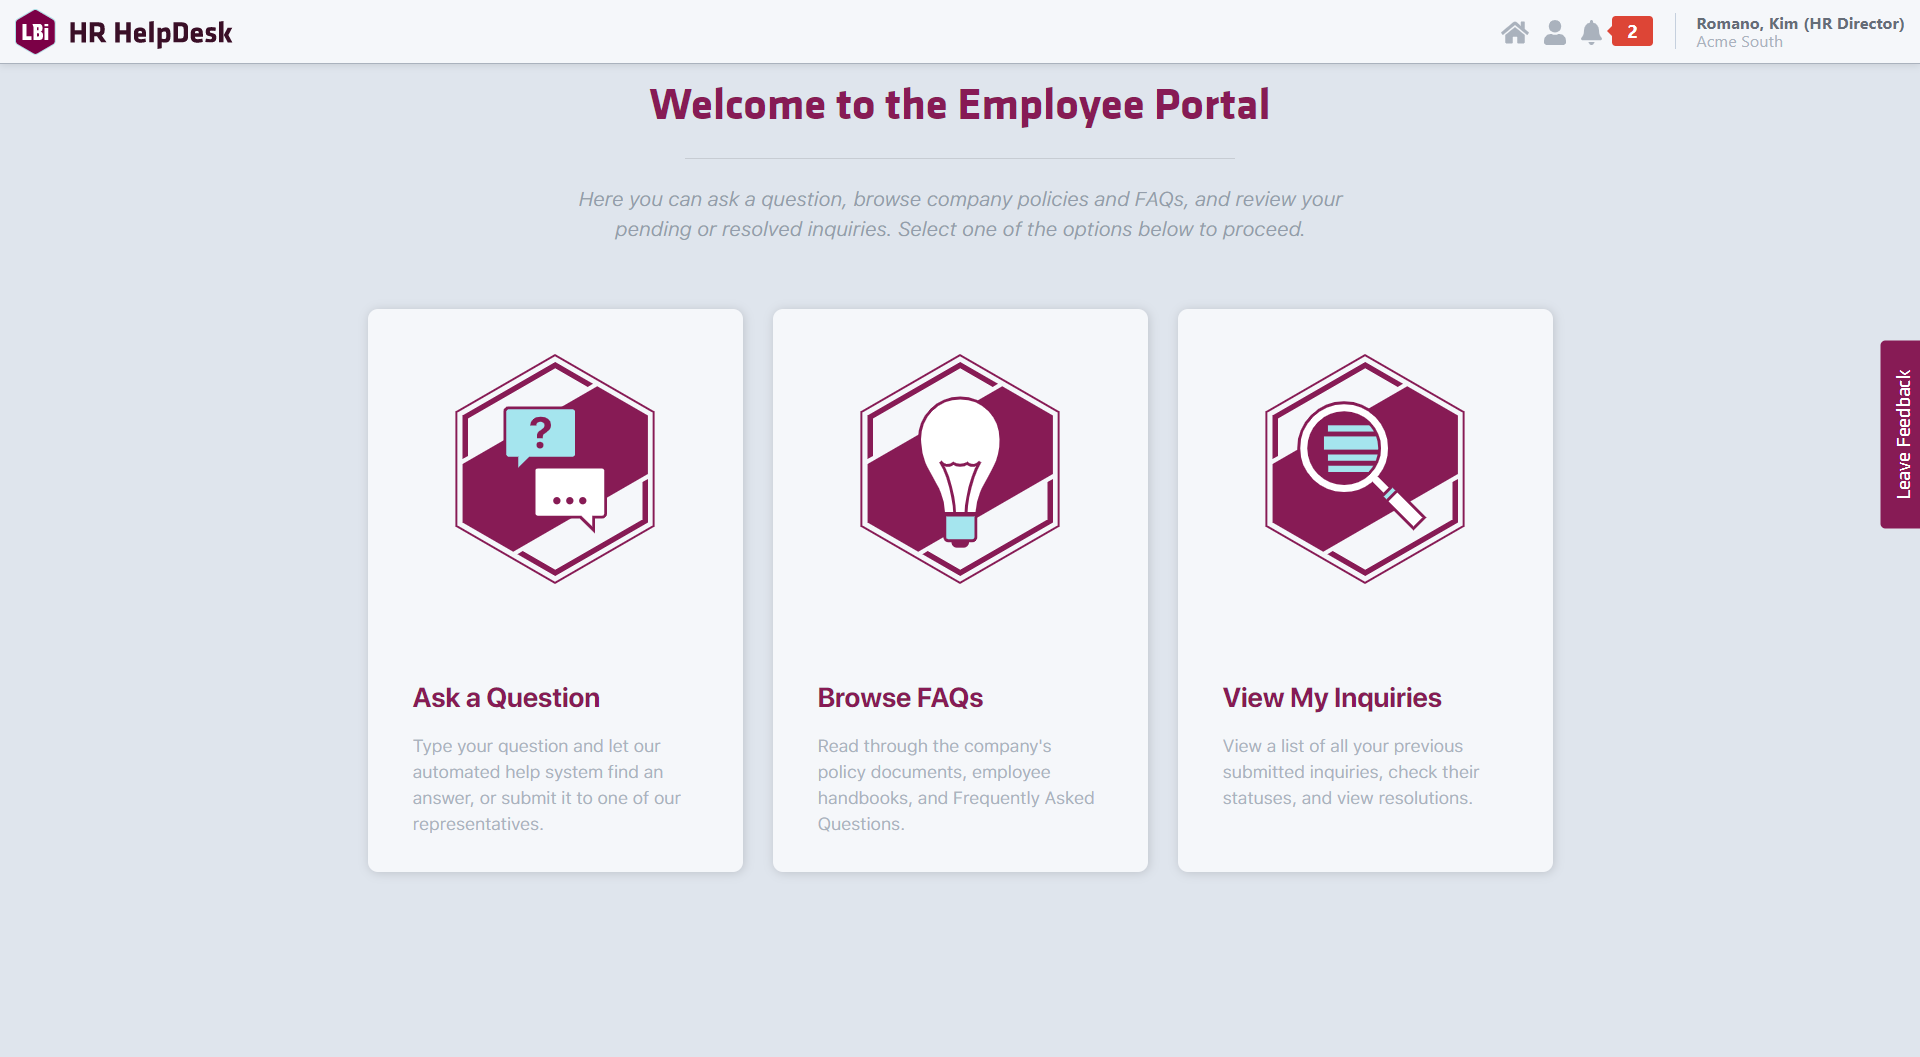 HR HelpDesk Portal